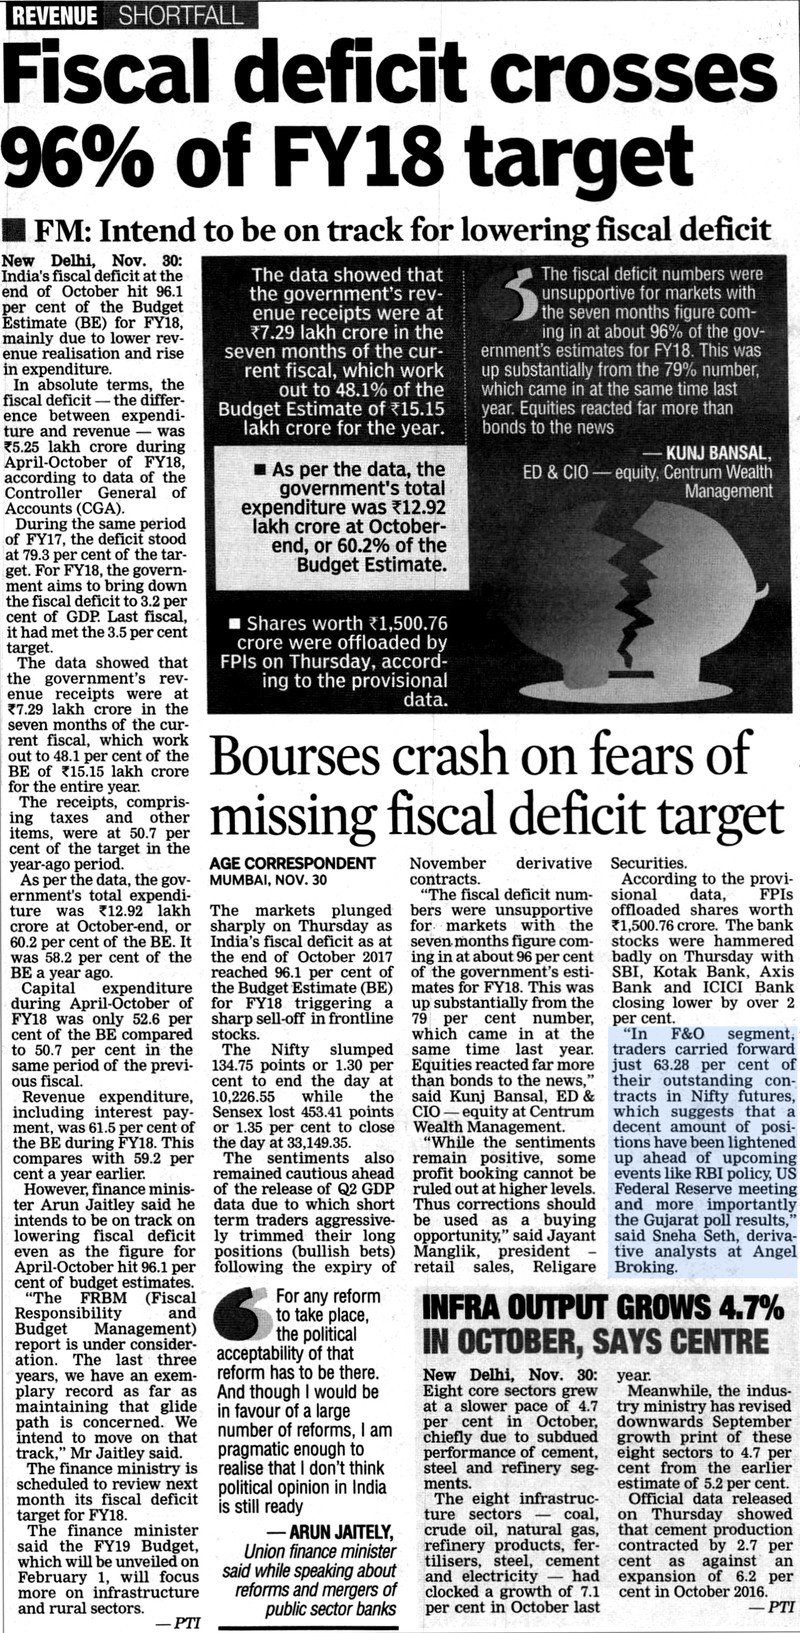 Bourses crash on fears of missing fiscal deficit target